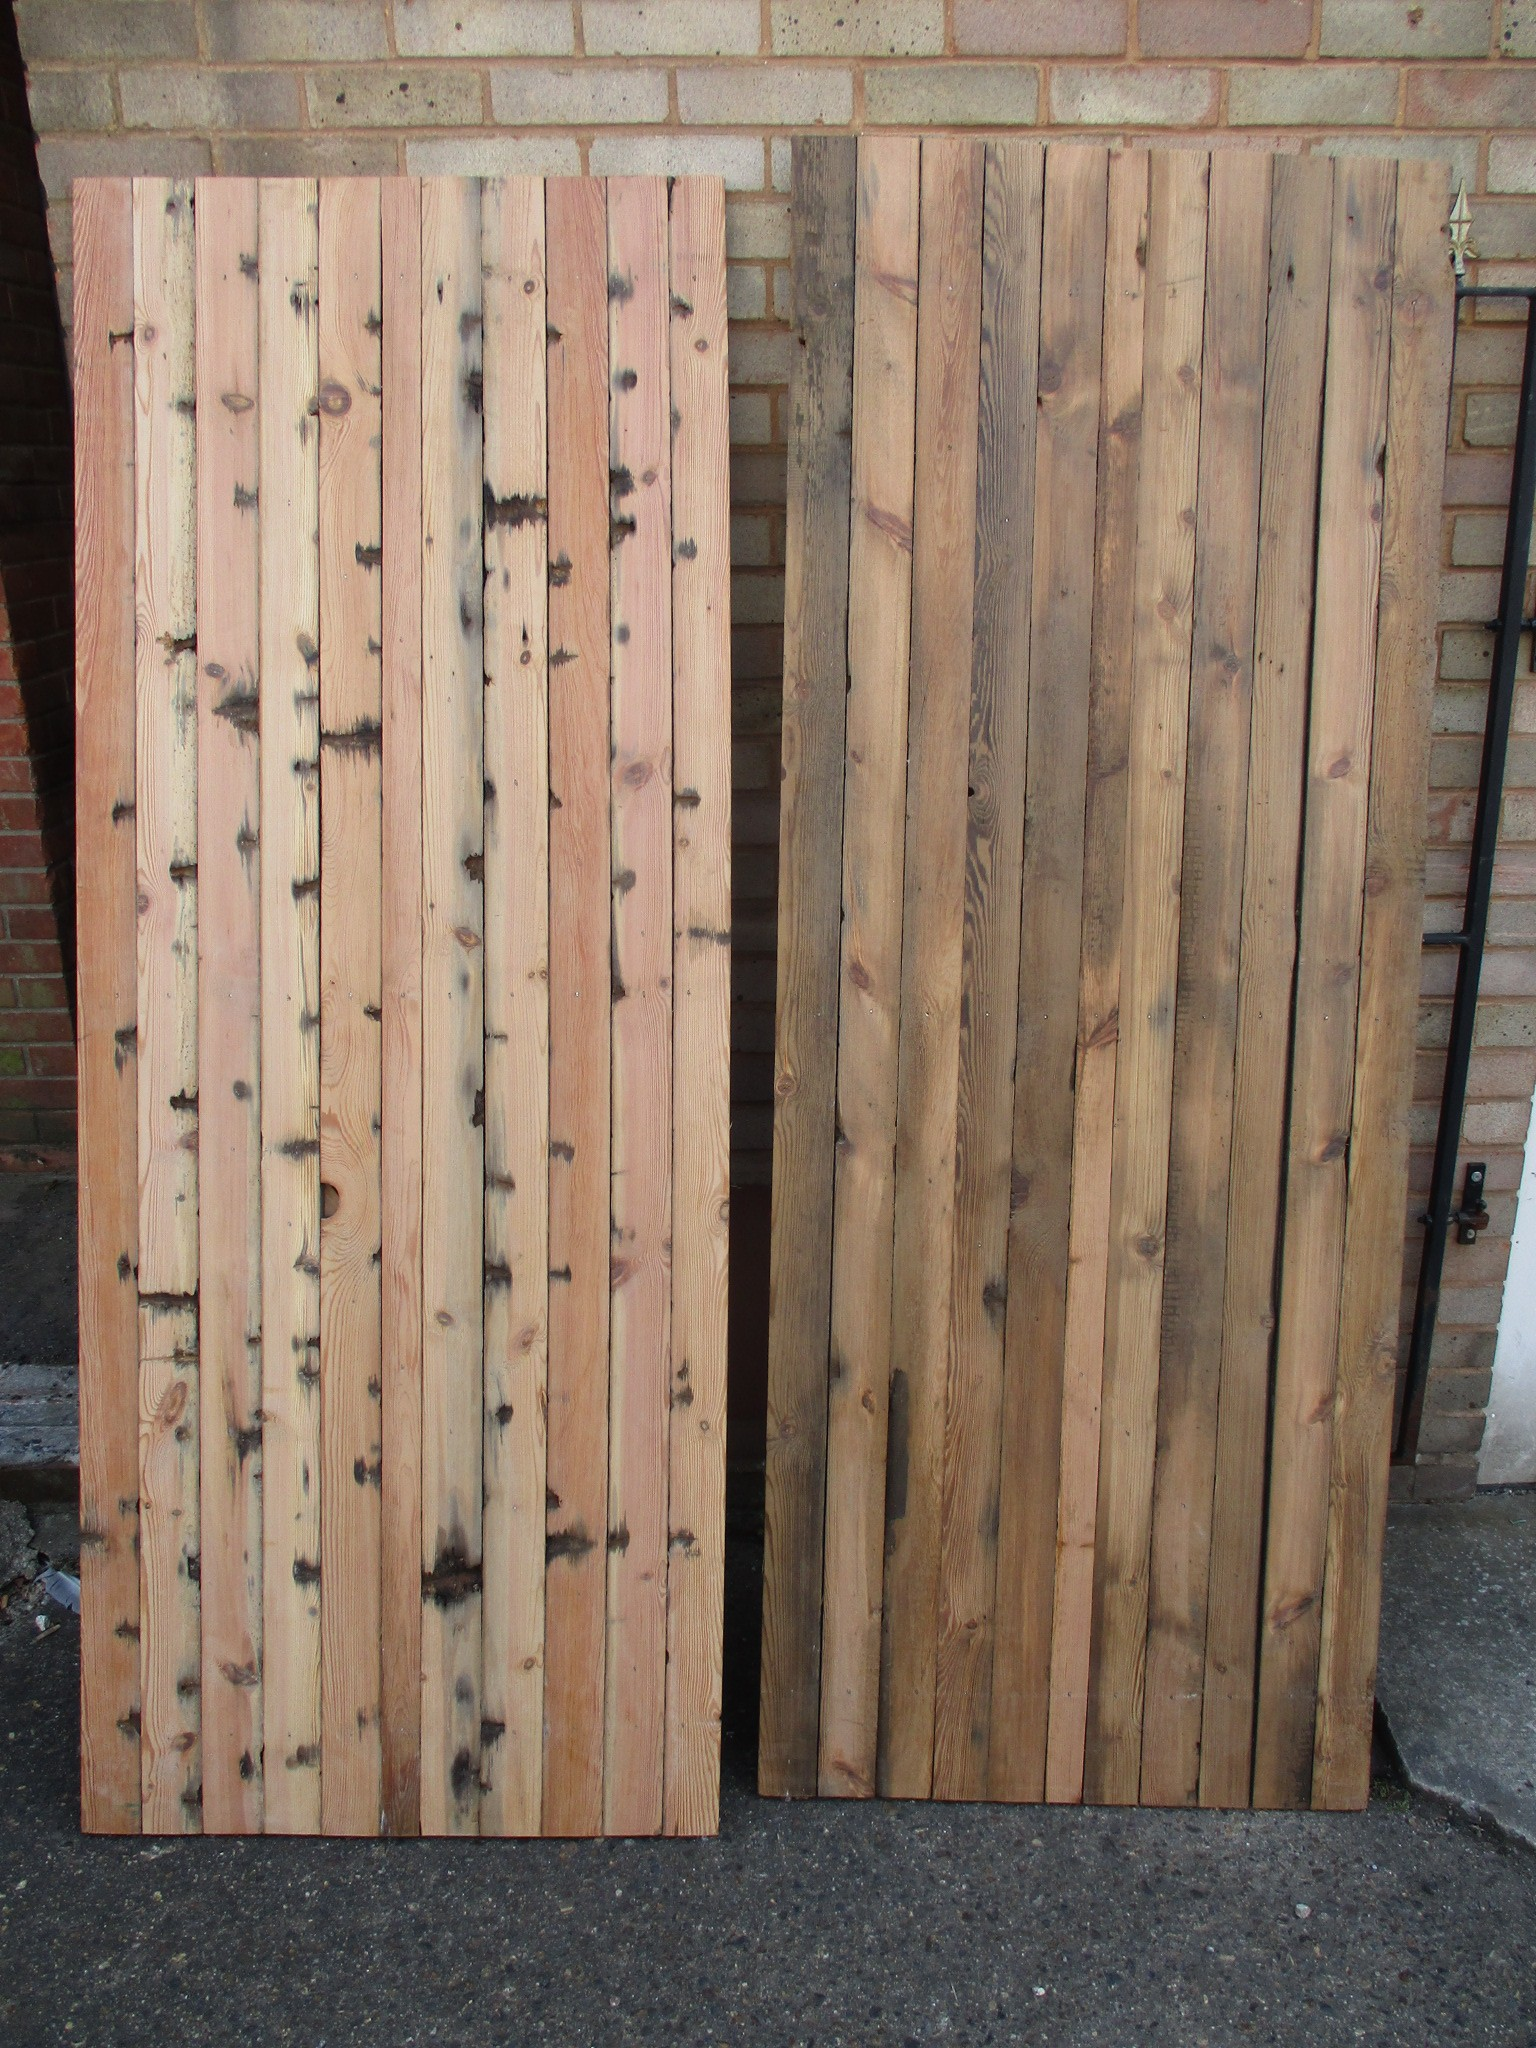 Plank doors made to order - any size possible using reclaimed timber